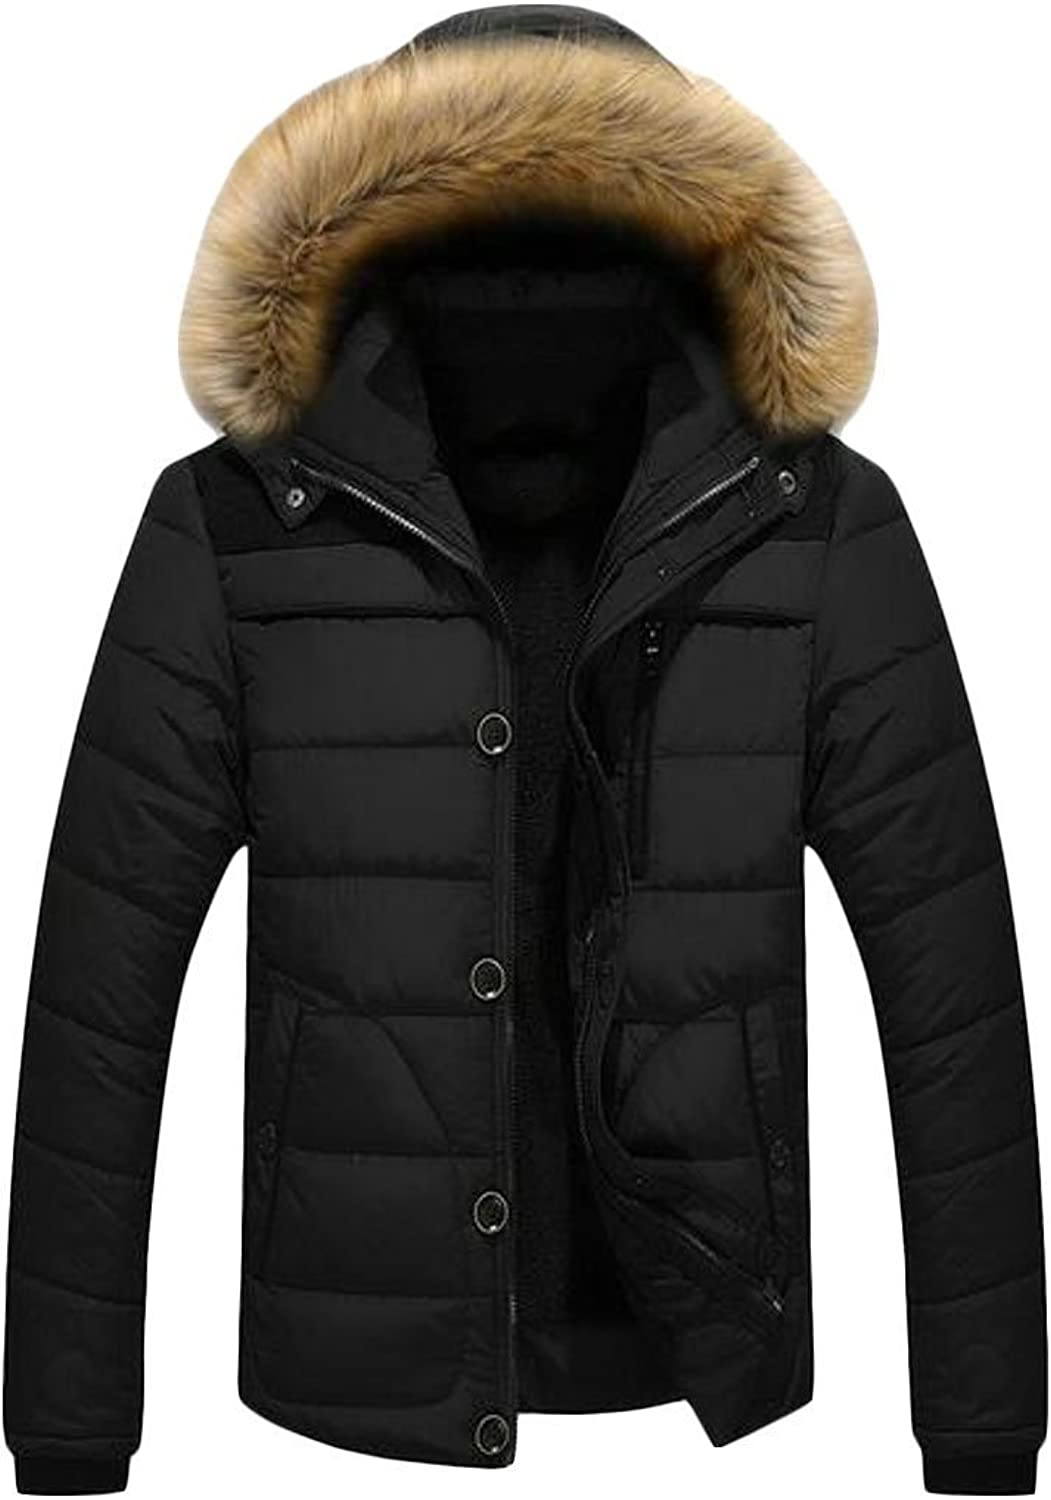 Suncolor8 Mens Warm Faux Fur Lined Winter Hooded Down Quilted Puffer Jacket Coat Outerwear